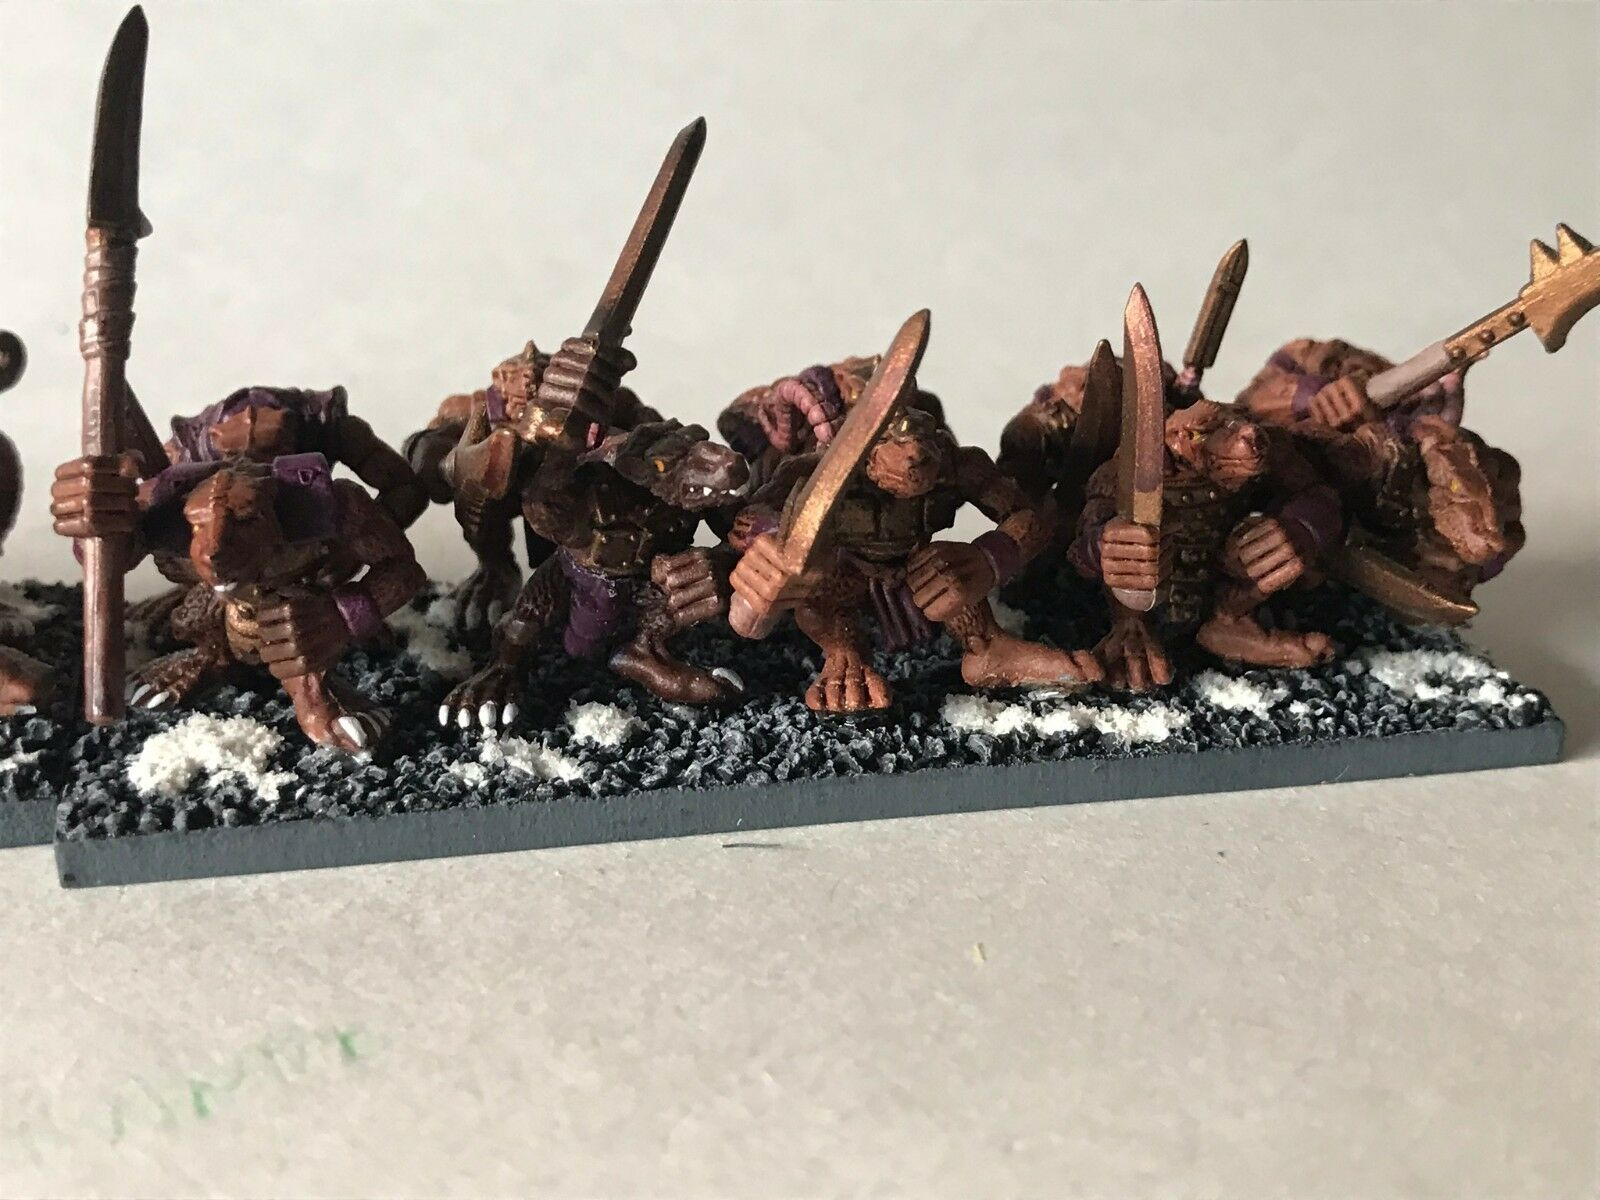 Warhammer Fantasy Skaven Clanrats - - - Painted and Based - x 20 3c1d5d